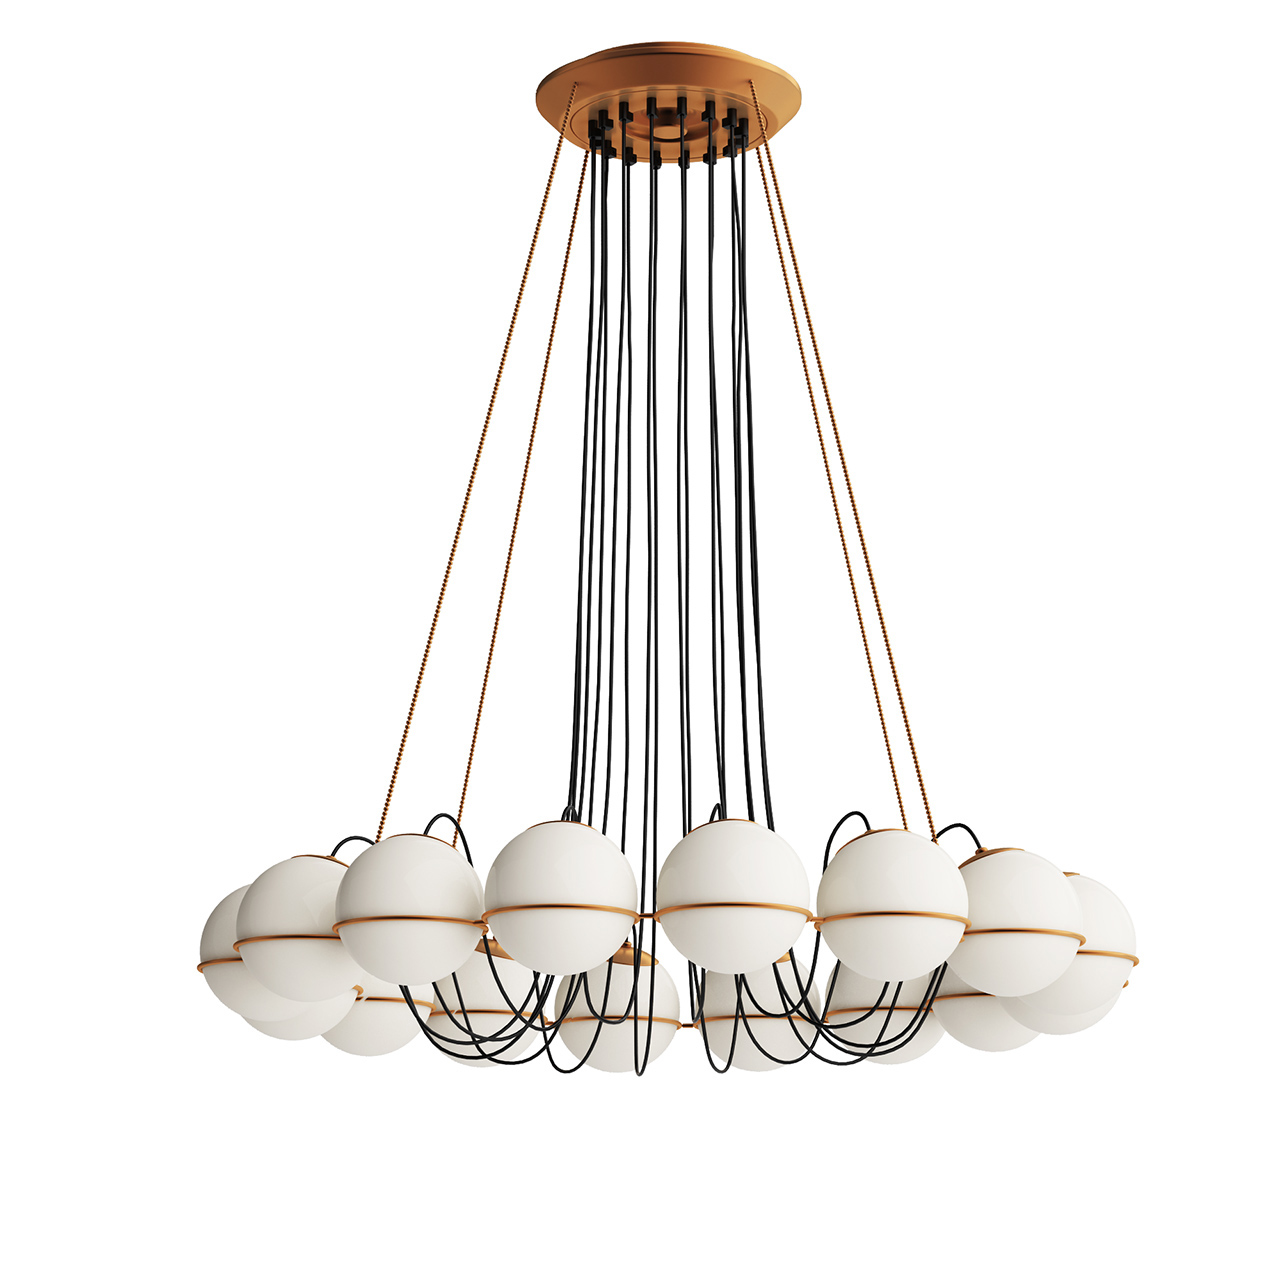 2109 Pendant Light by Astep